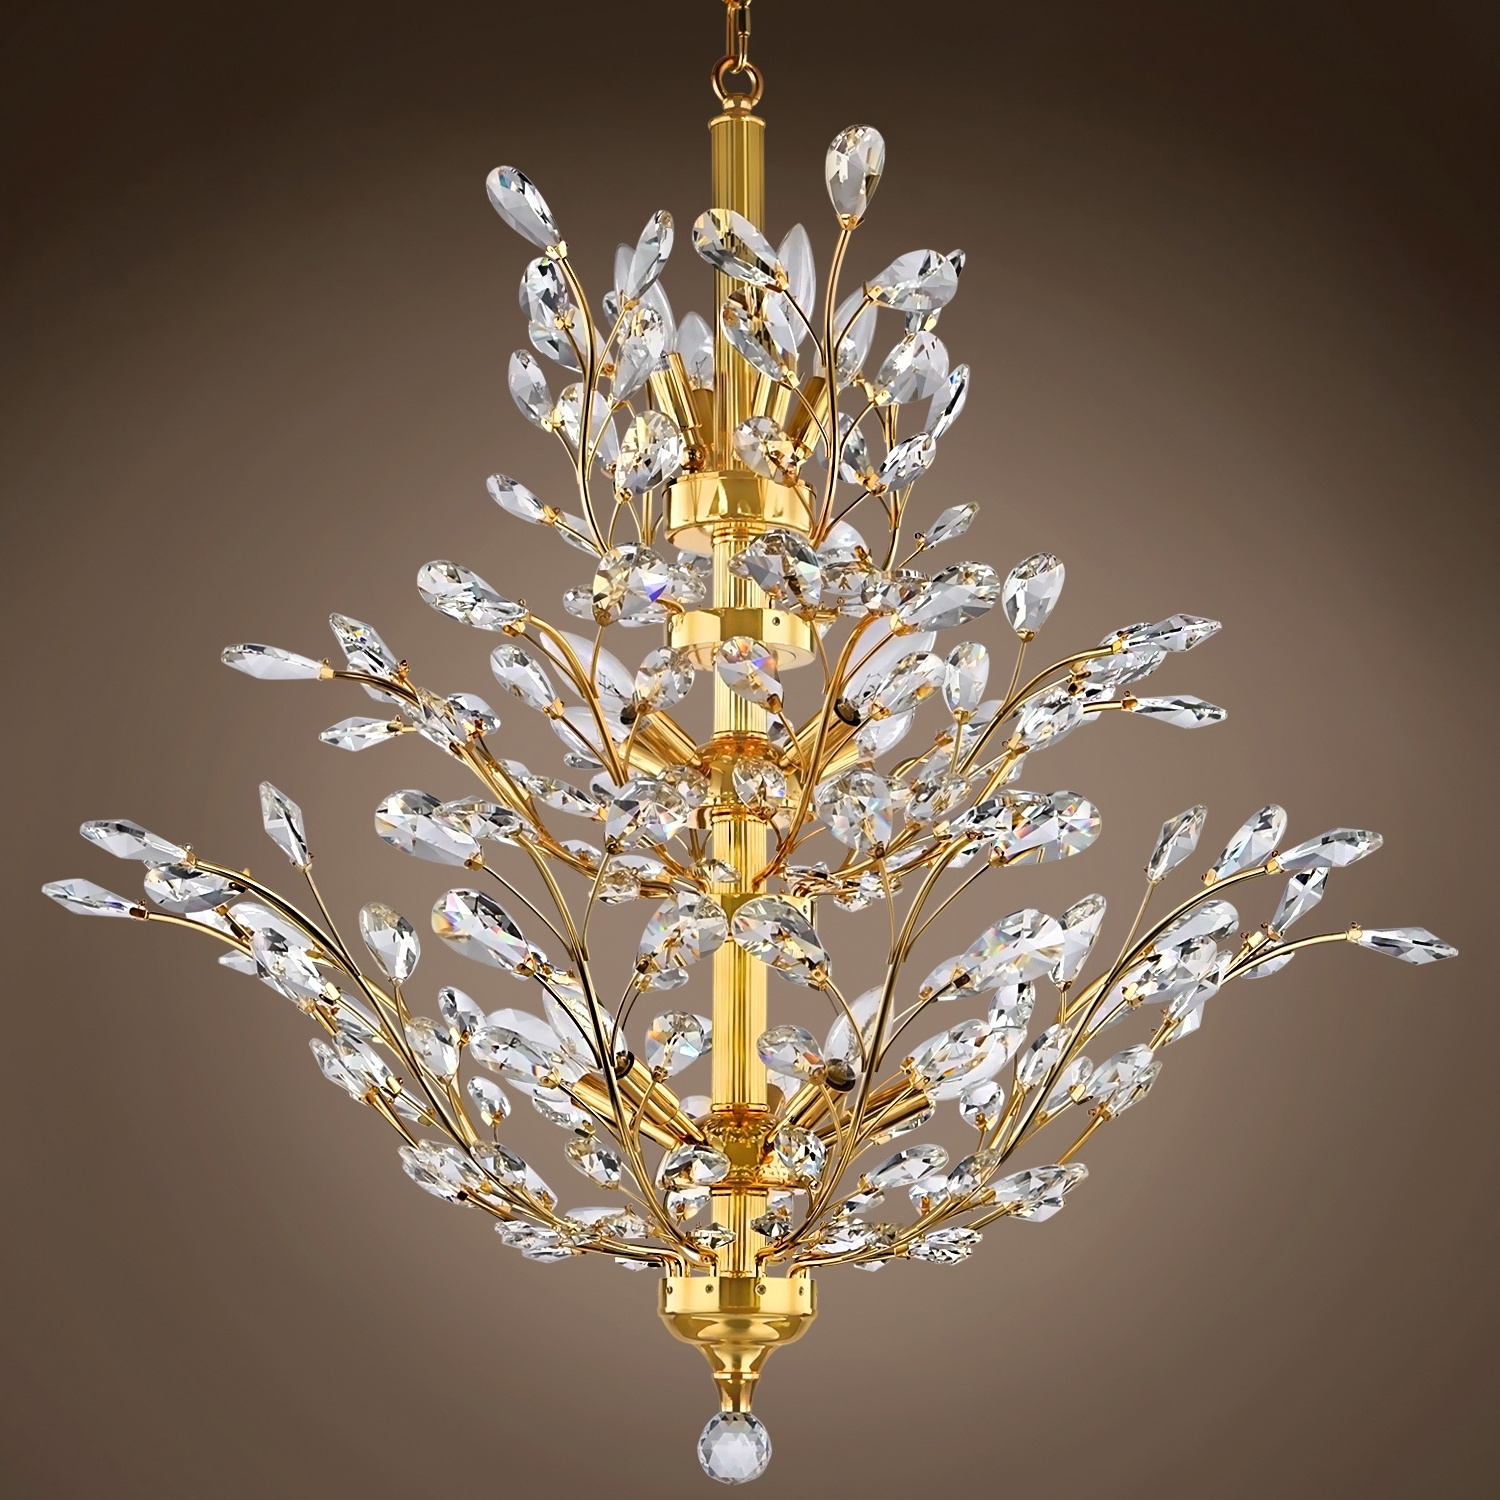 Joshua Marshal 700861 Branch Of Light 10 Light Gold Chandelier With Intended For Popular Crystal Branch Chandelier (Gallery 7 of 15)